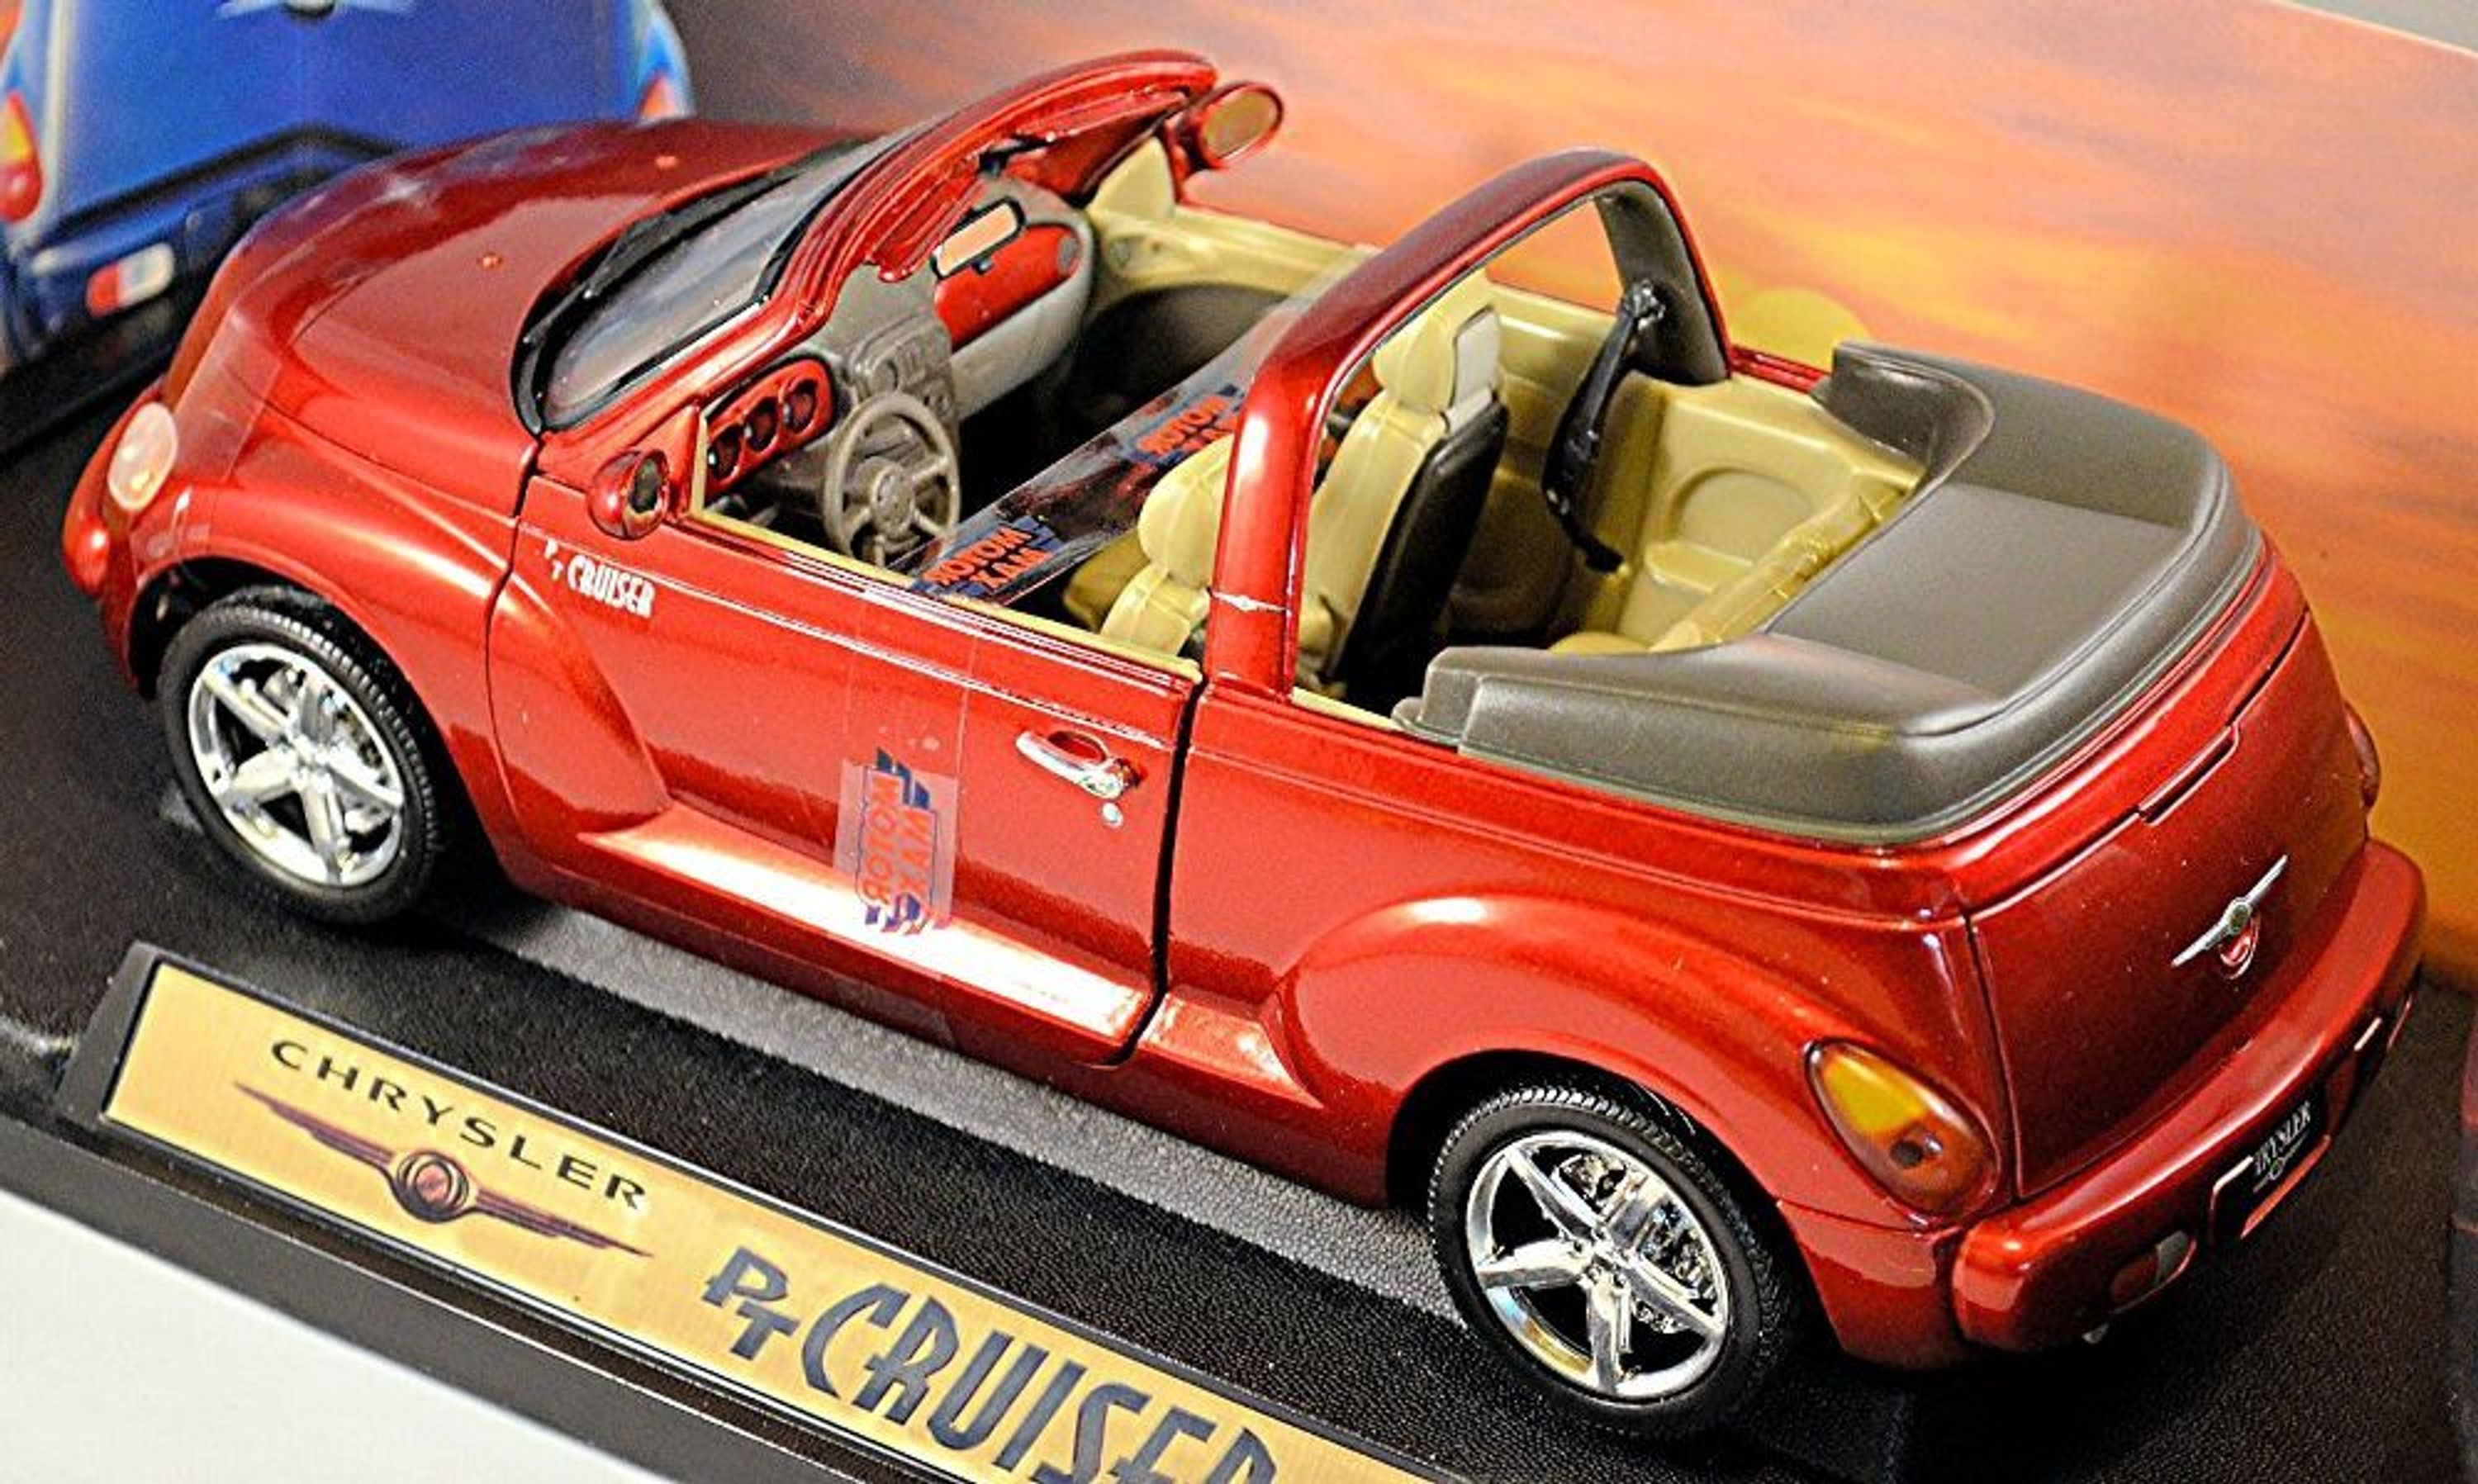 chrysler pt cruiser cabrio 2004 06 rot red metal with the top up 1 18 motor max ebay. Black Bedroom Furniture Sets. Home Design Ideas